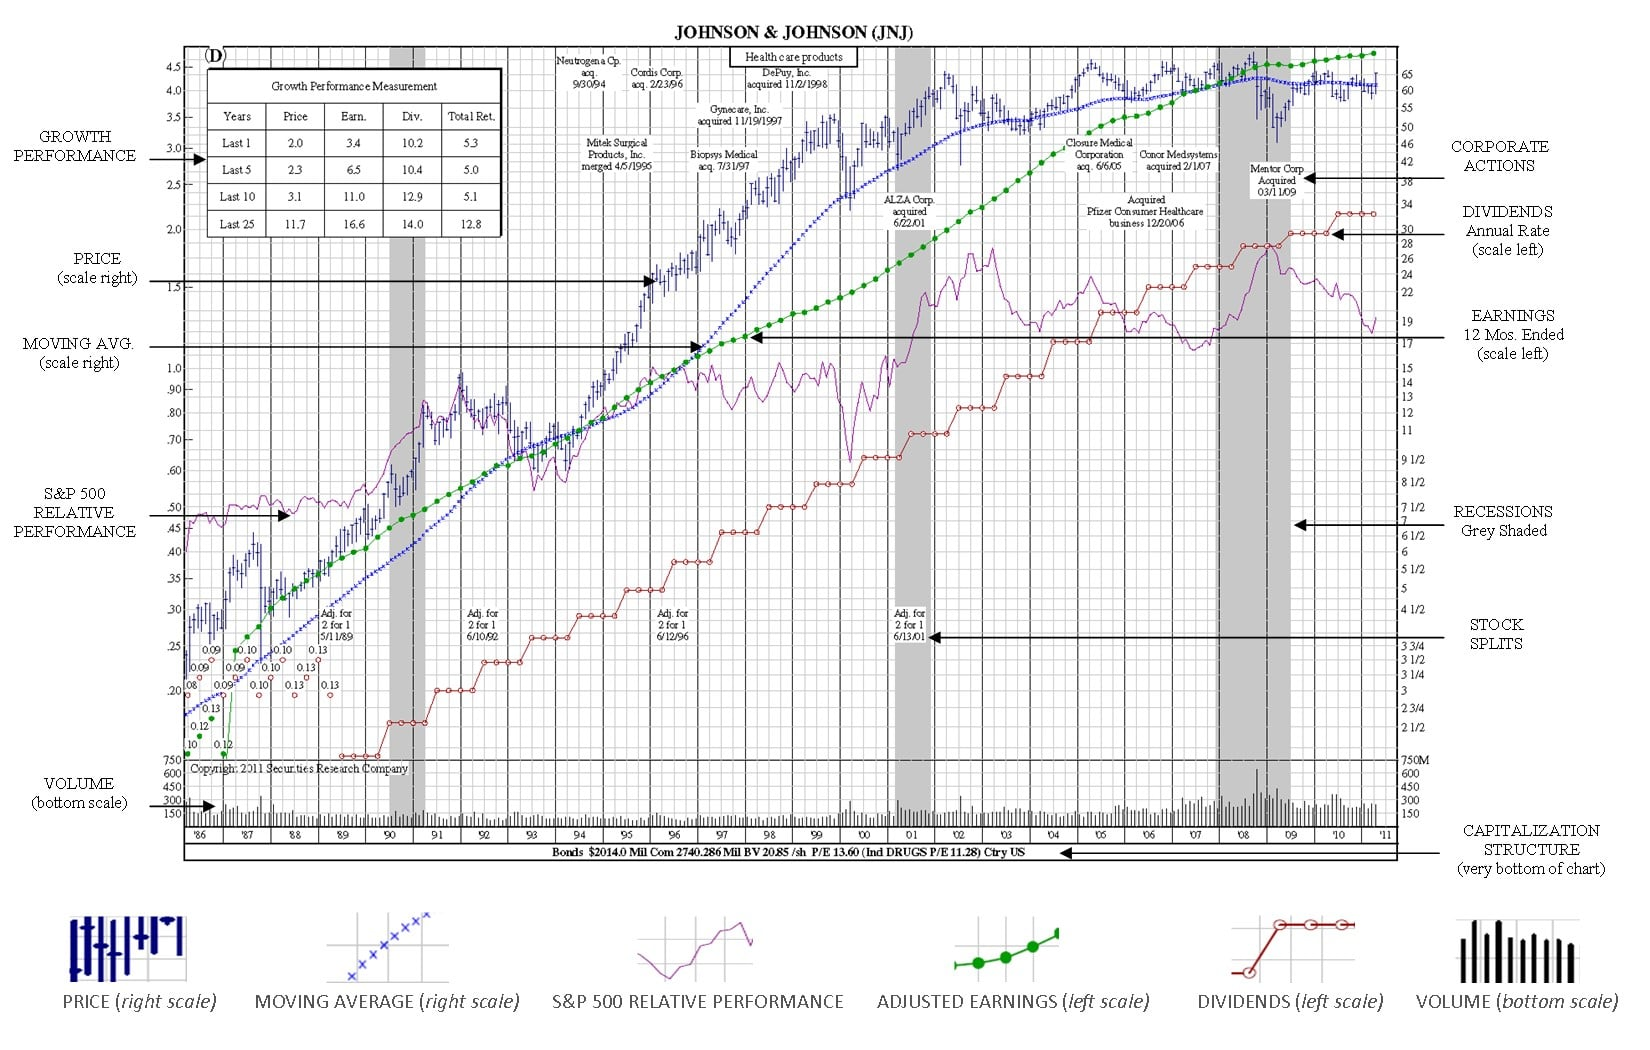 stock market terms jnj stockchart example